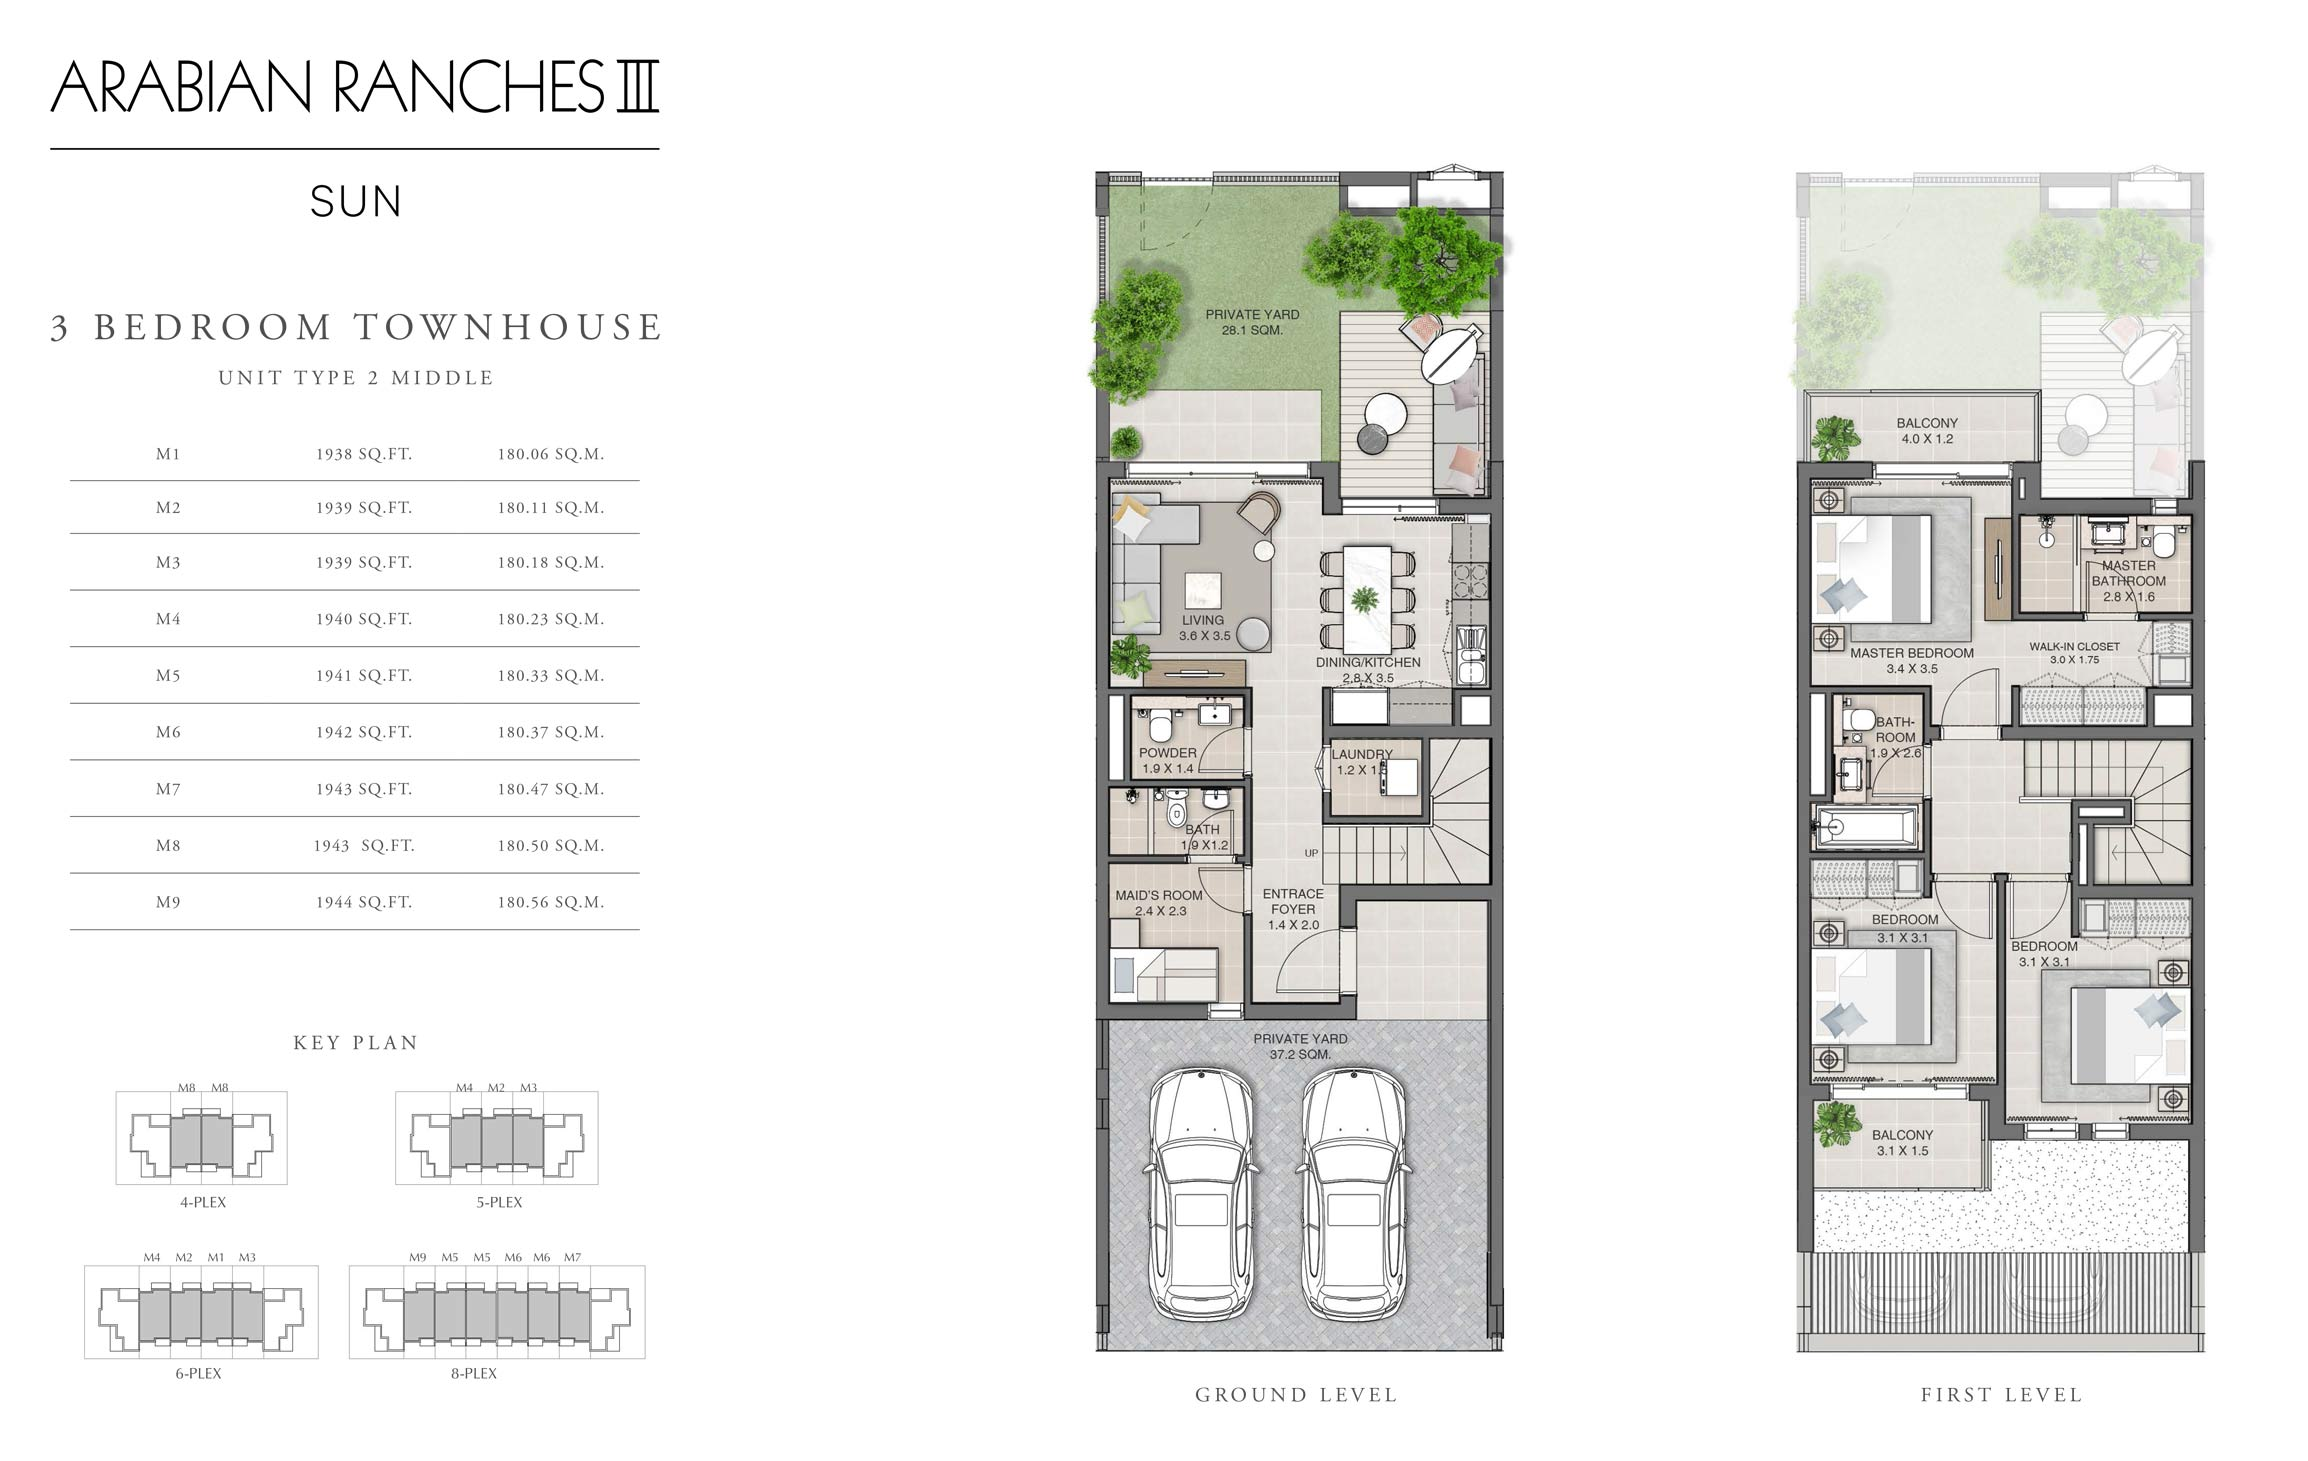 3 Bedroom Unit Type 2 Middle Size 1938-1944 sq ft